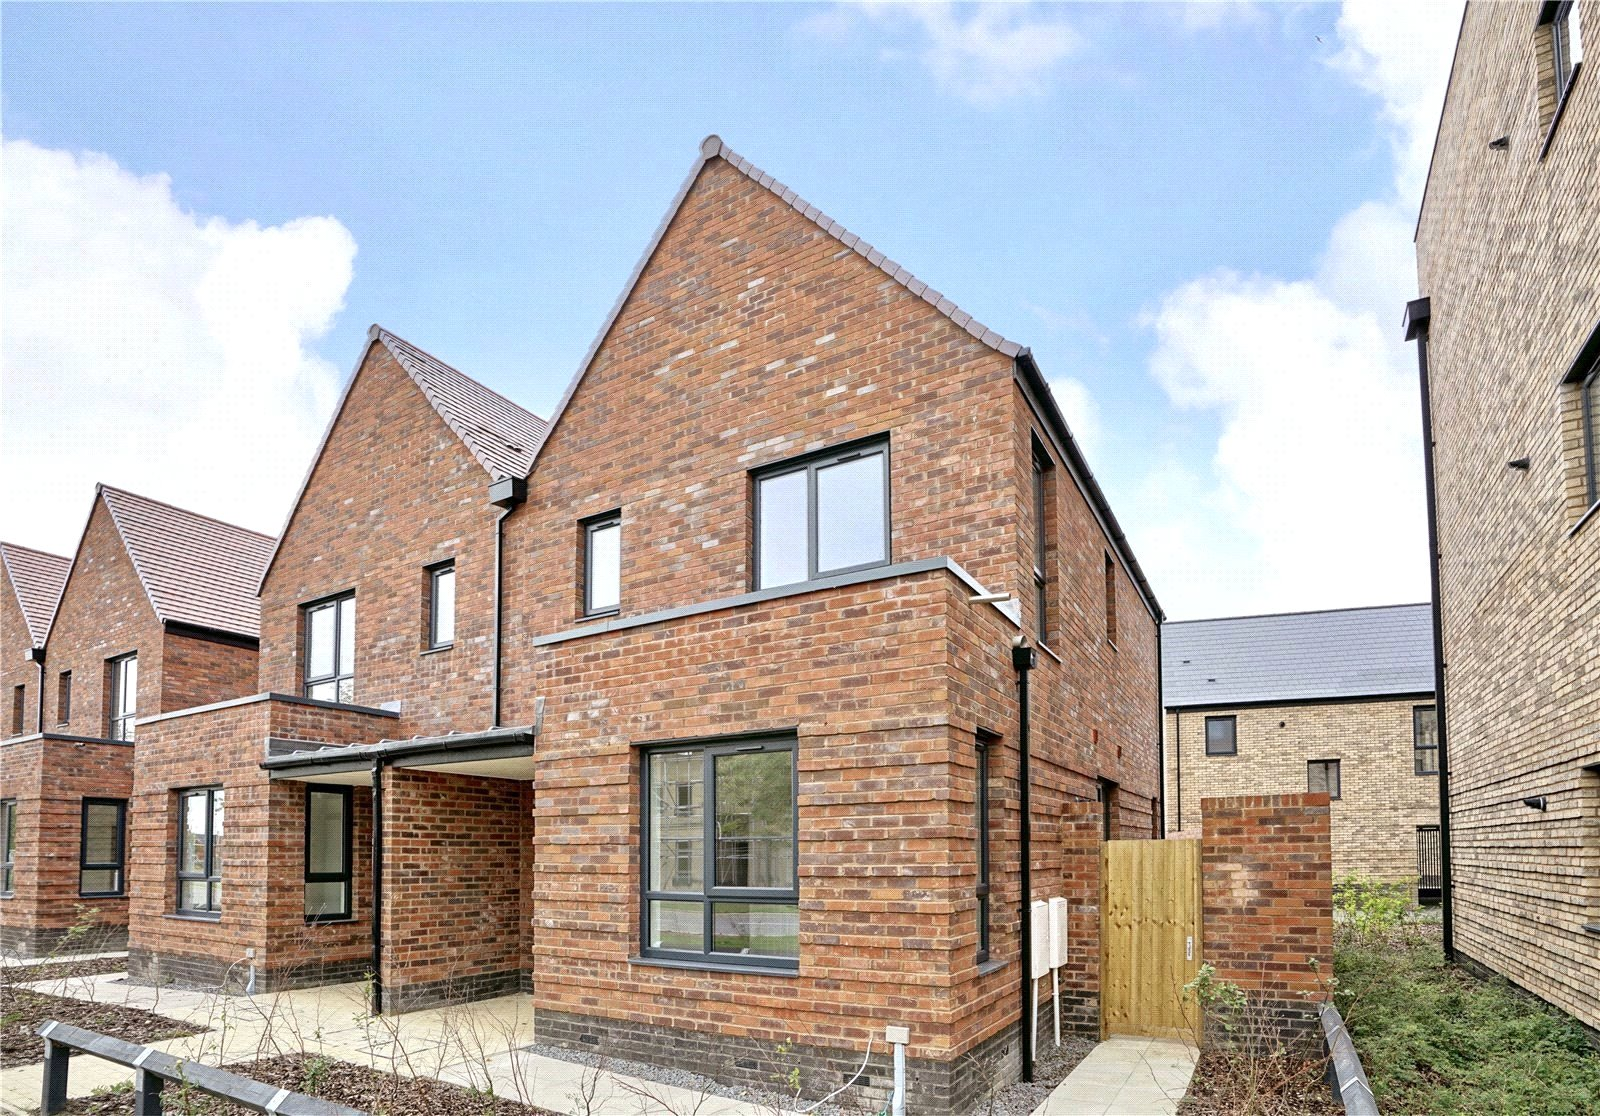 3 bed house for sale in Alconbury Weald, PE28 4HX, PE28